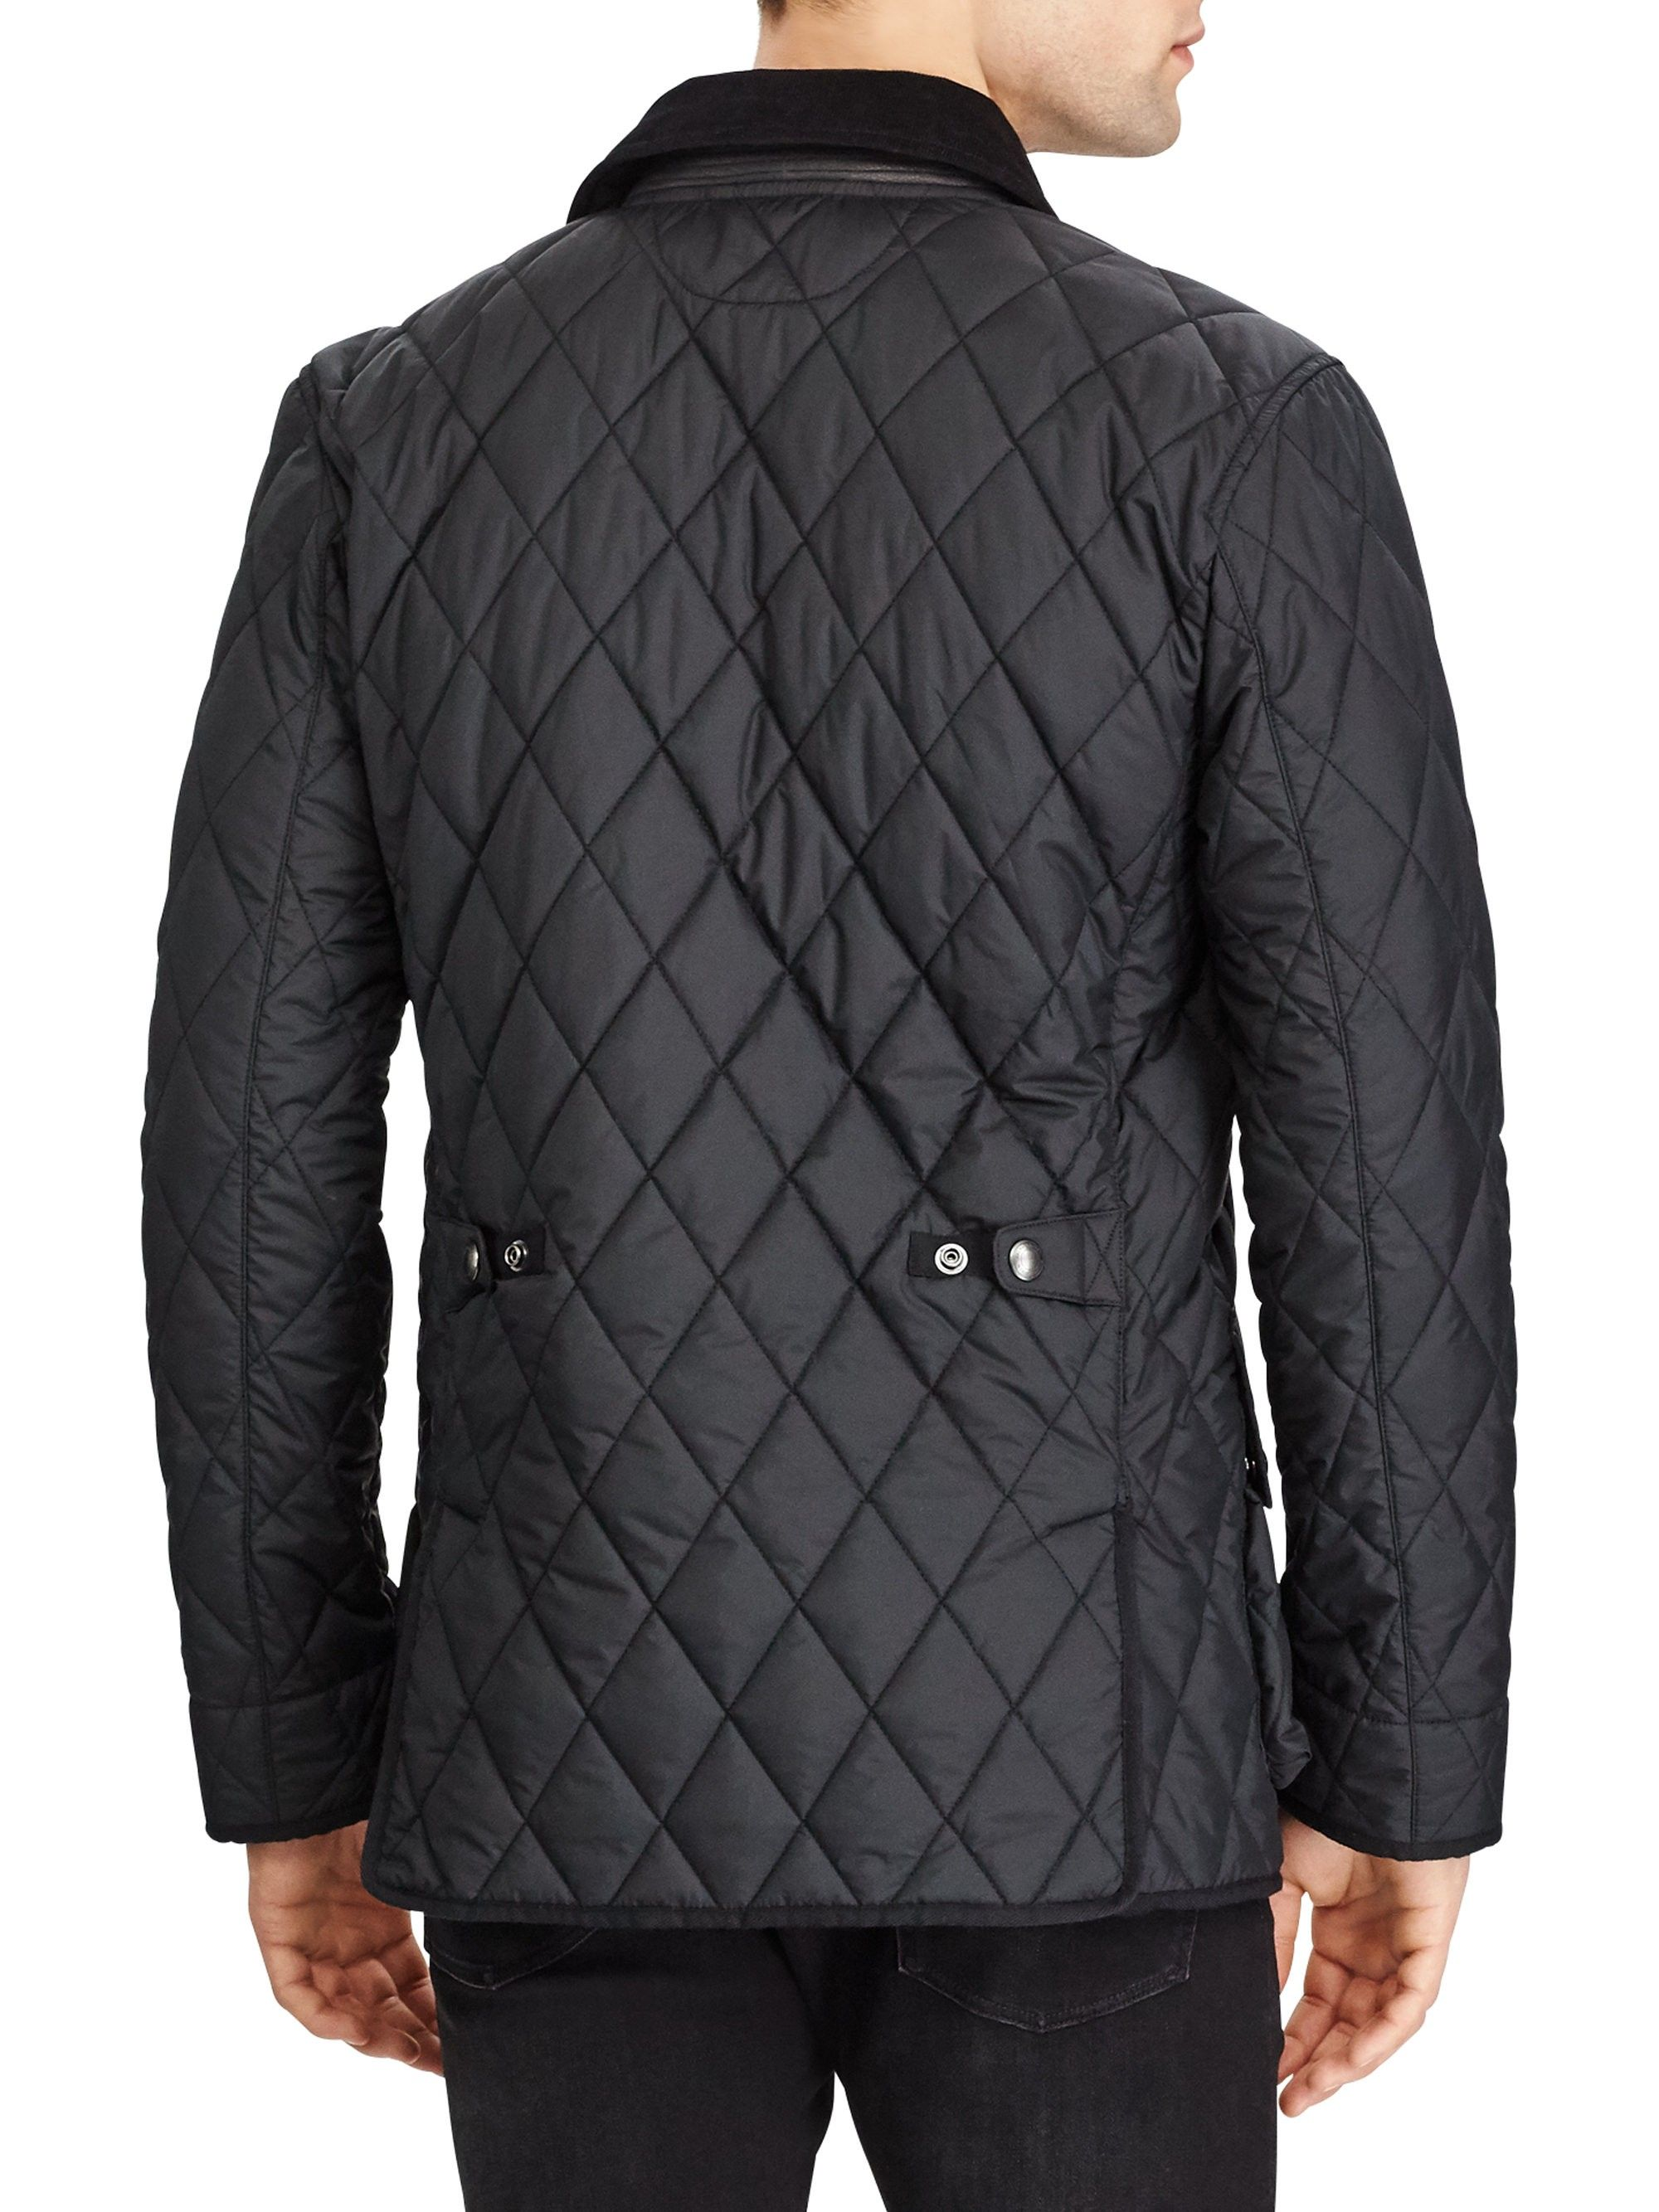 Car Black LargeProducts Coat Matte Xx Lauren Kempton Ralph WEH9DI2